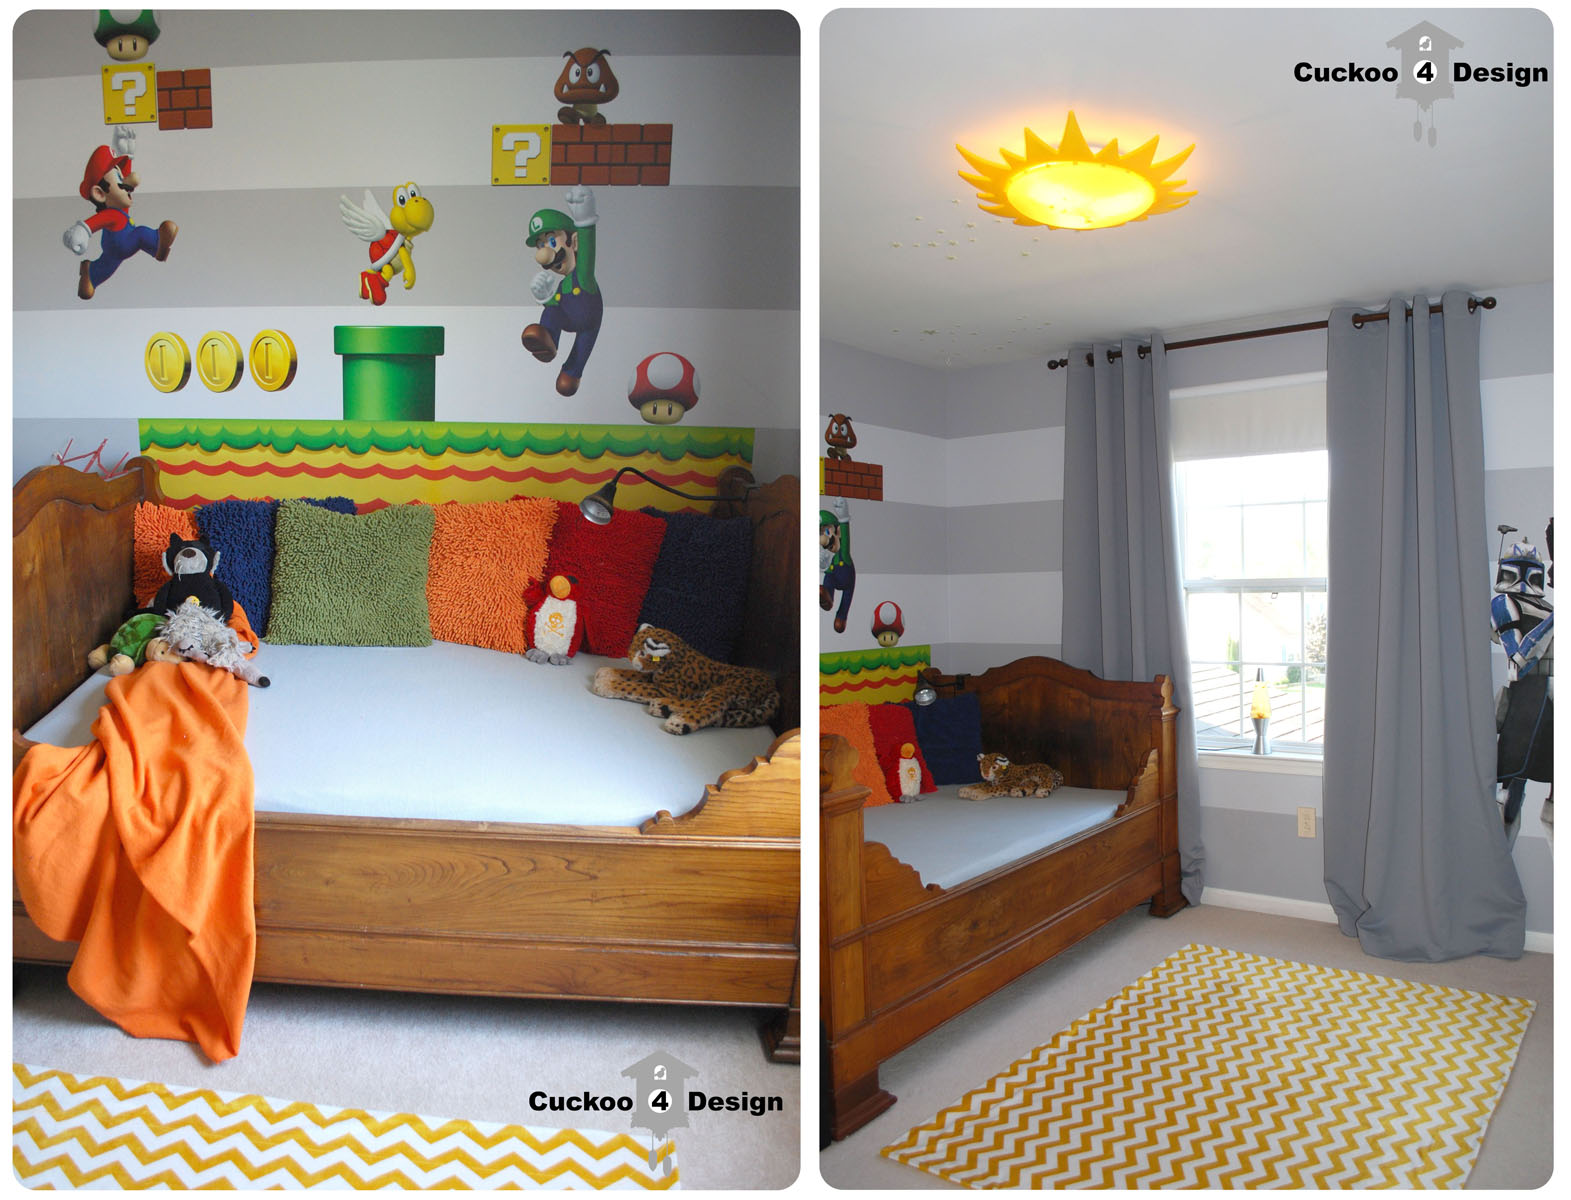 Mario brothers room idea cuckoo4design 5 year old boy room decoration